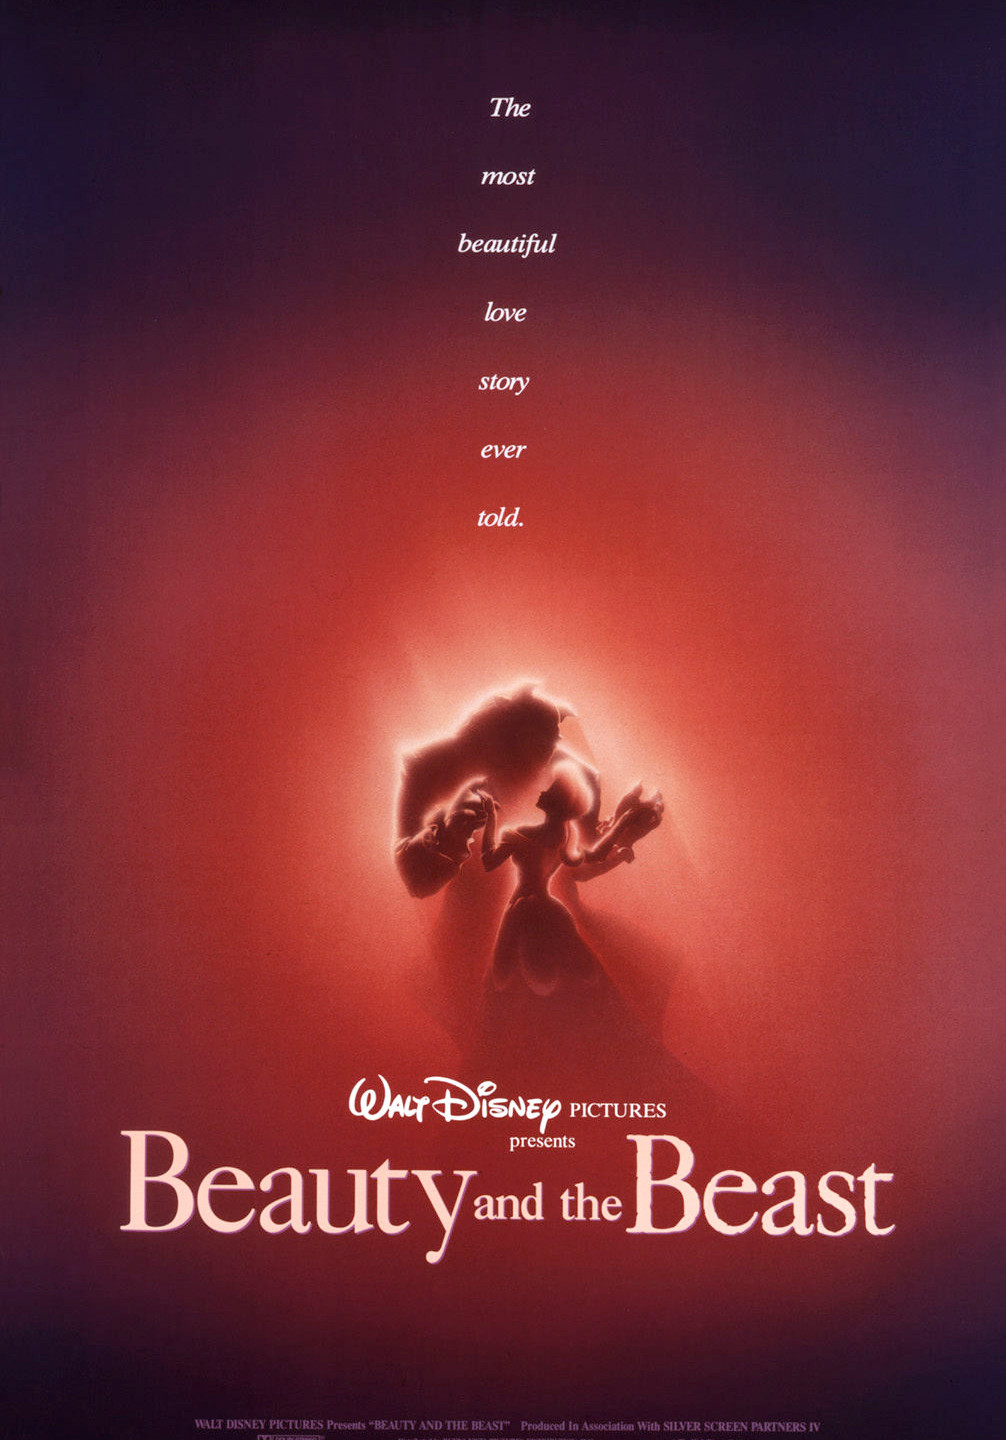 Alvin's haunting poster for BEAUTY AND THE BEAST embraces the mystery and romantic nature of the tale.